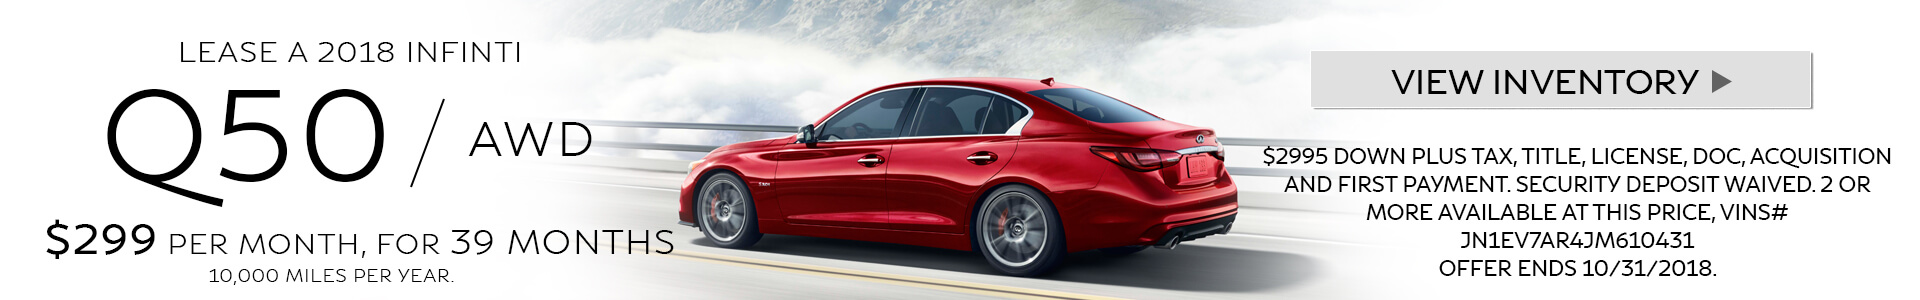 Q50 Lease Special